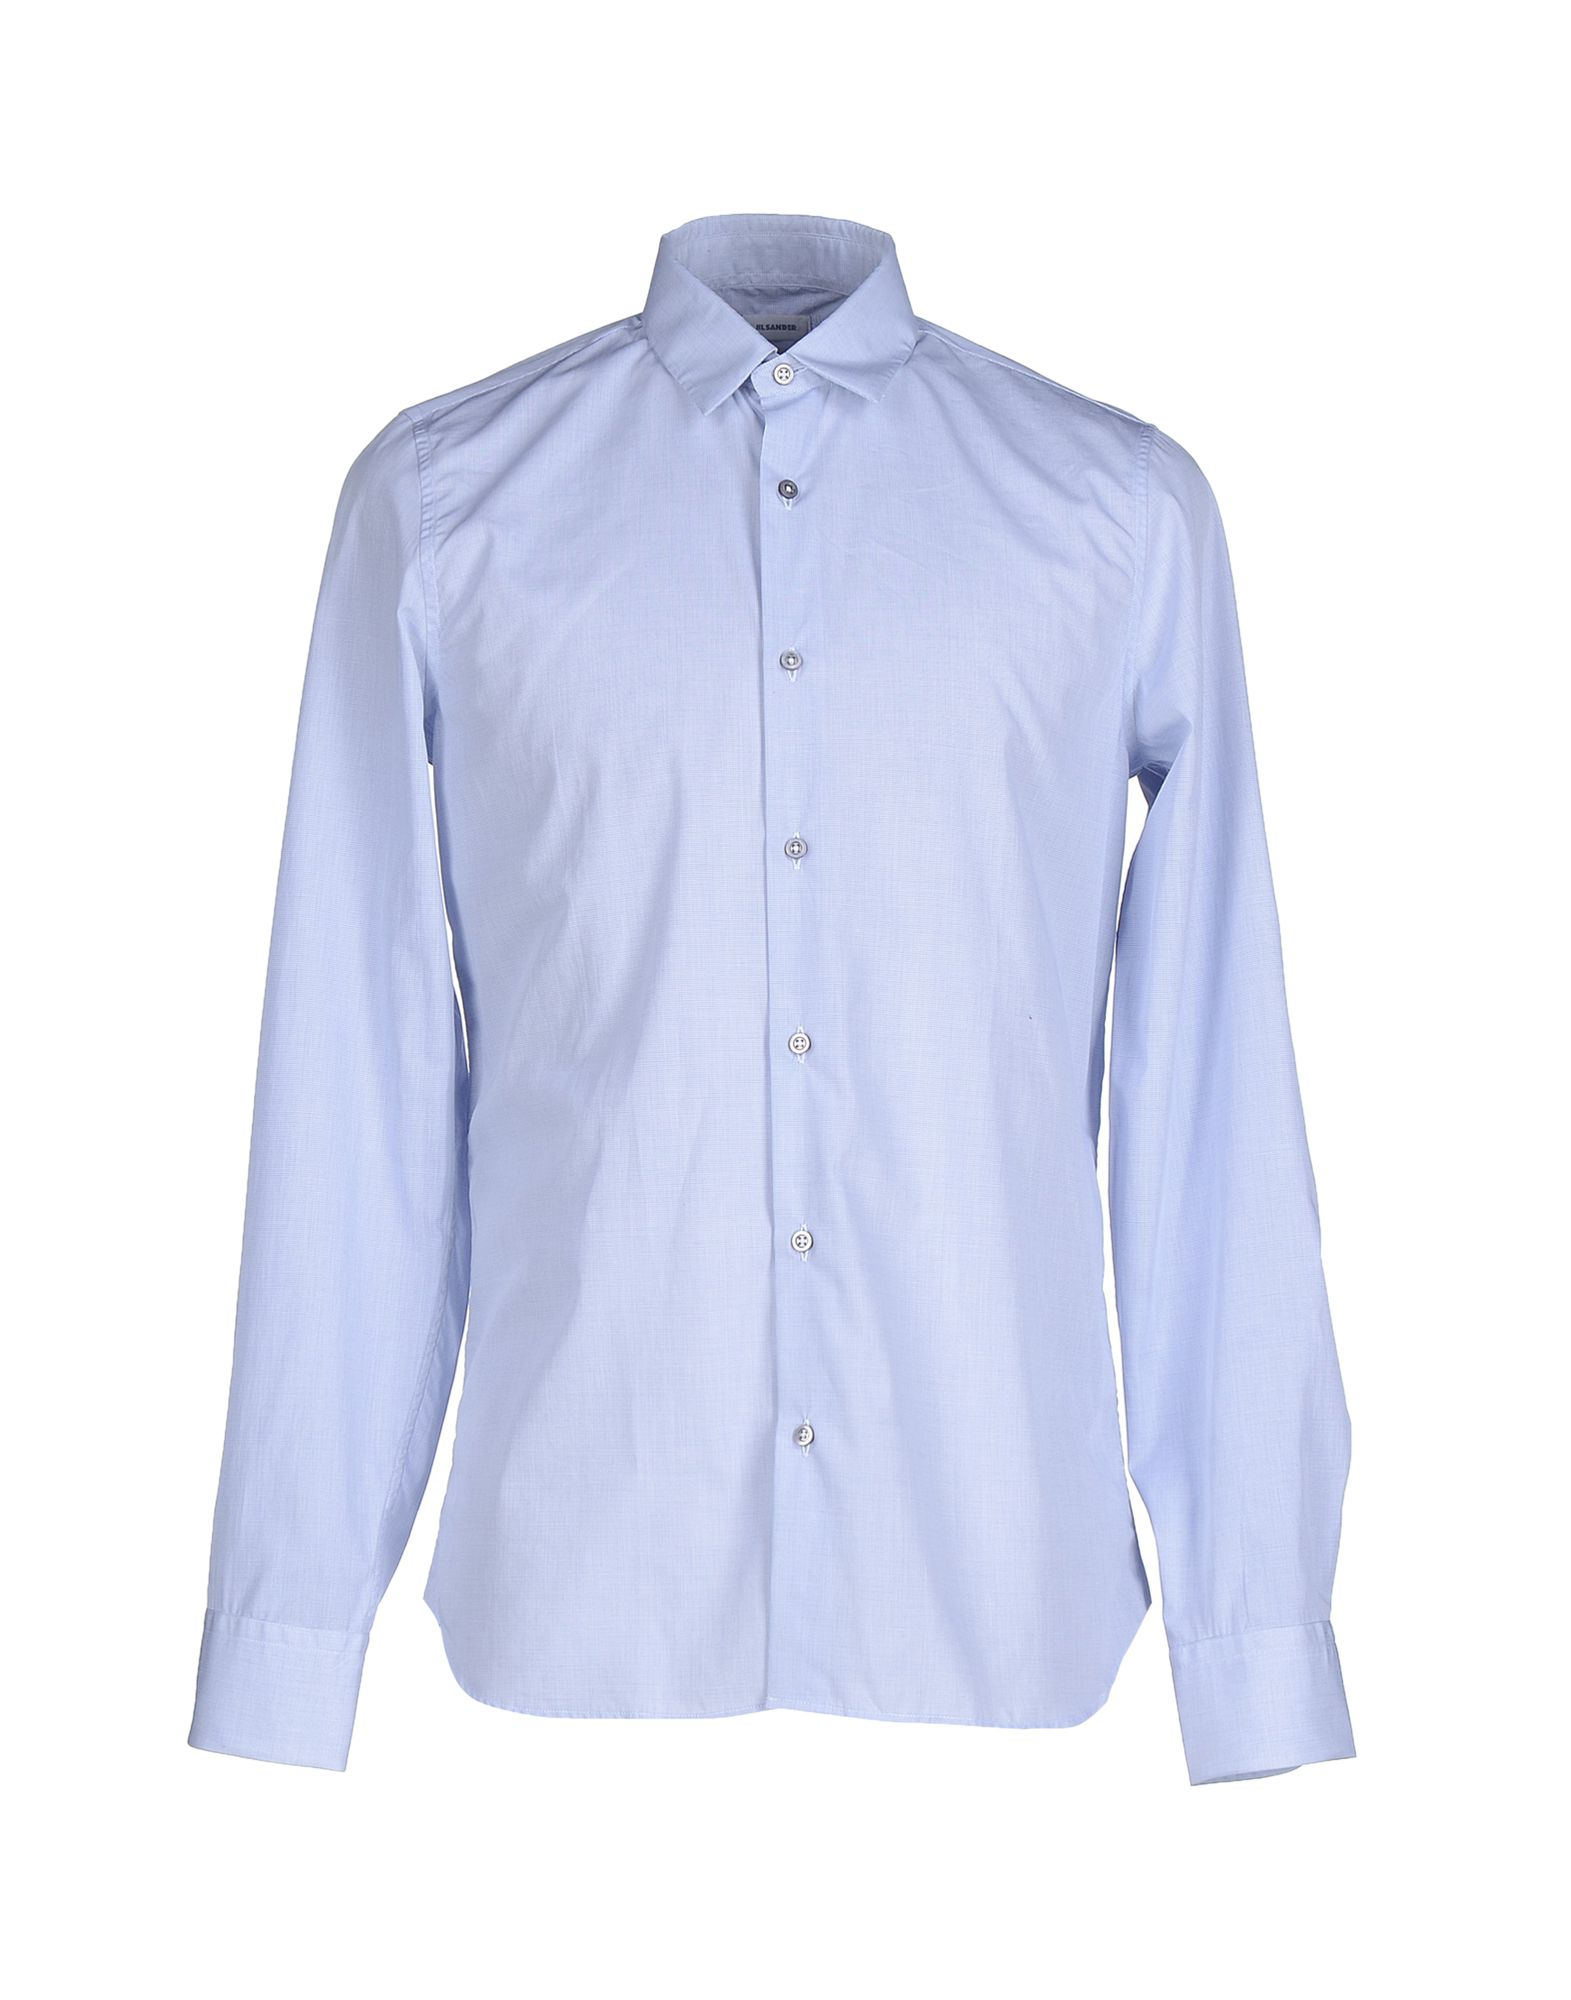 lyst jil sander shirt in blue for men. Black Bedroom Furniture Sets. Home Design Ideas